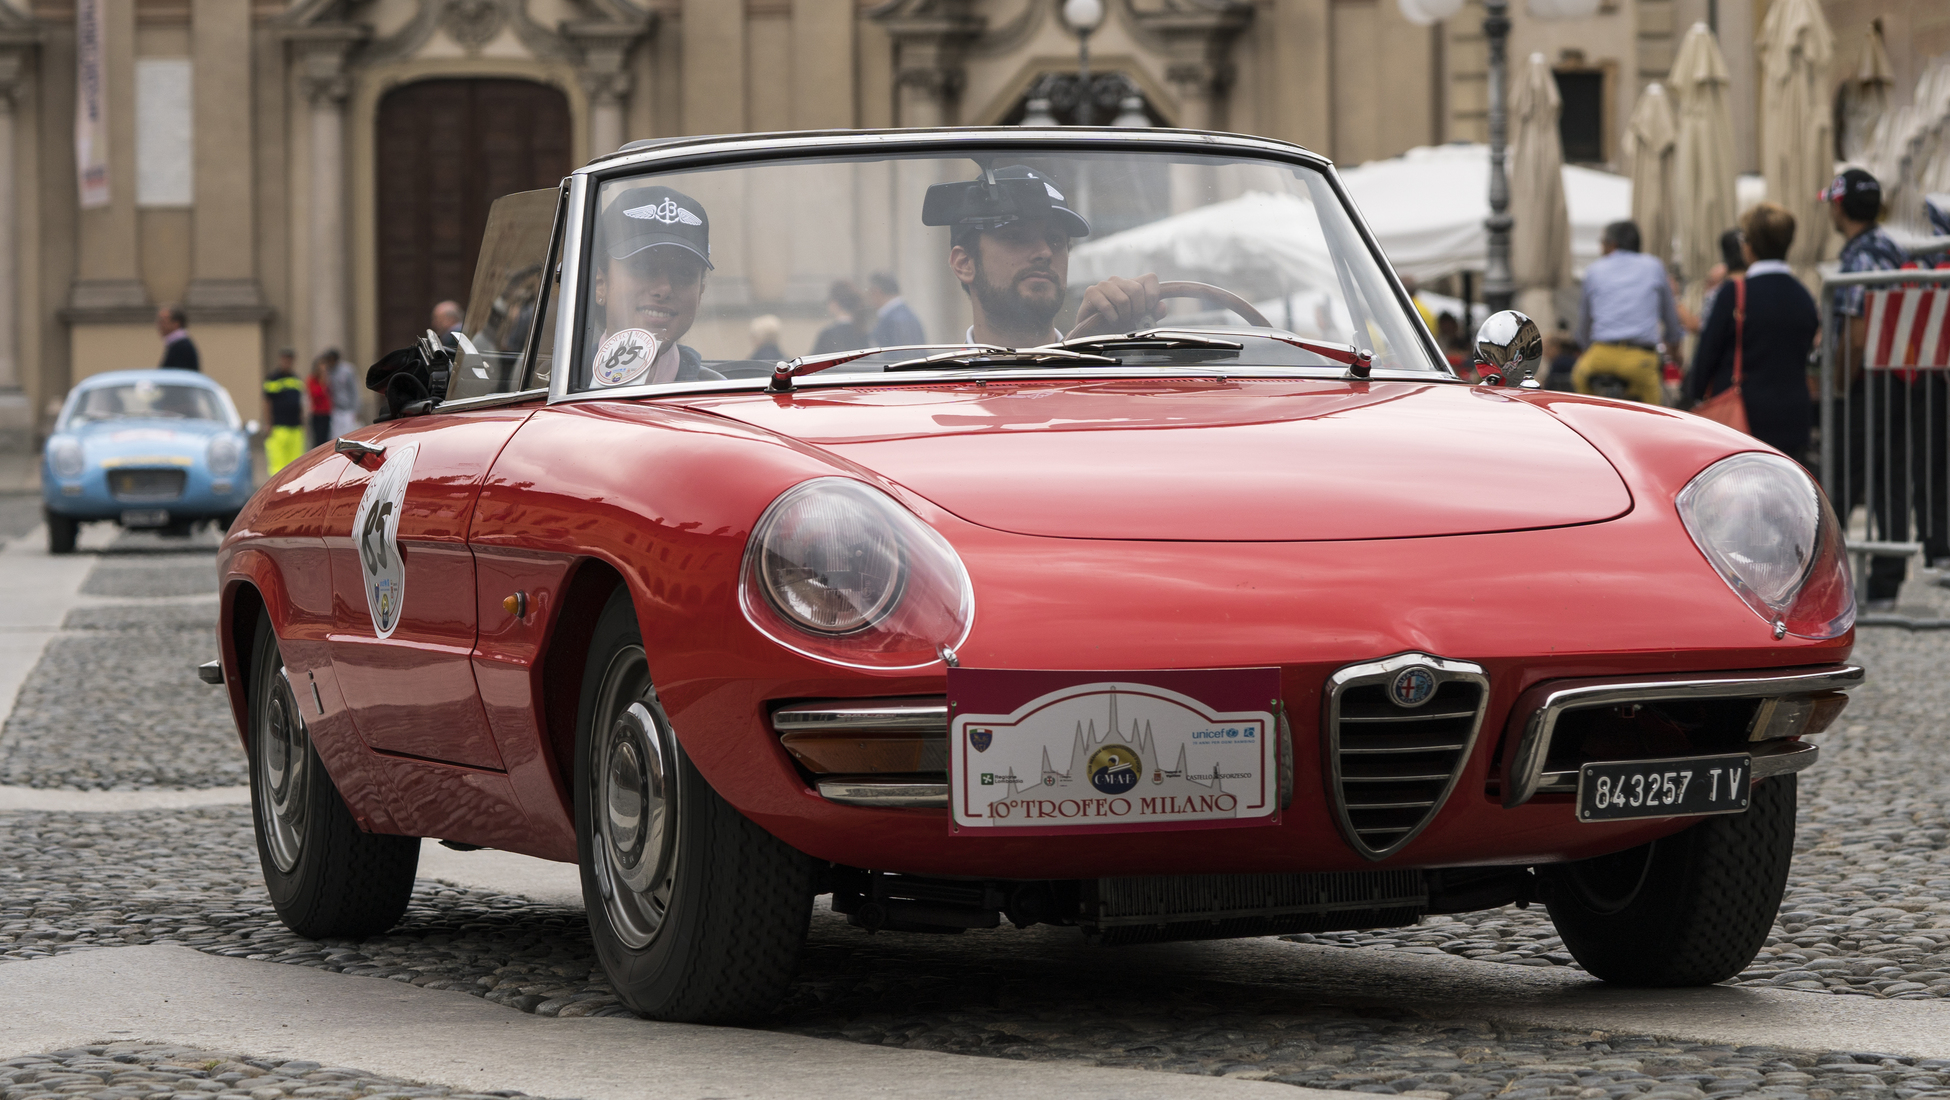 The 7 Best Alfa Romeo Classics According to Our Expert - Catawiki